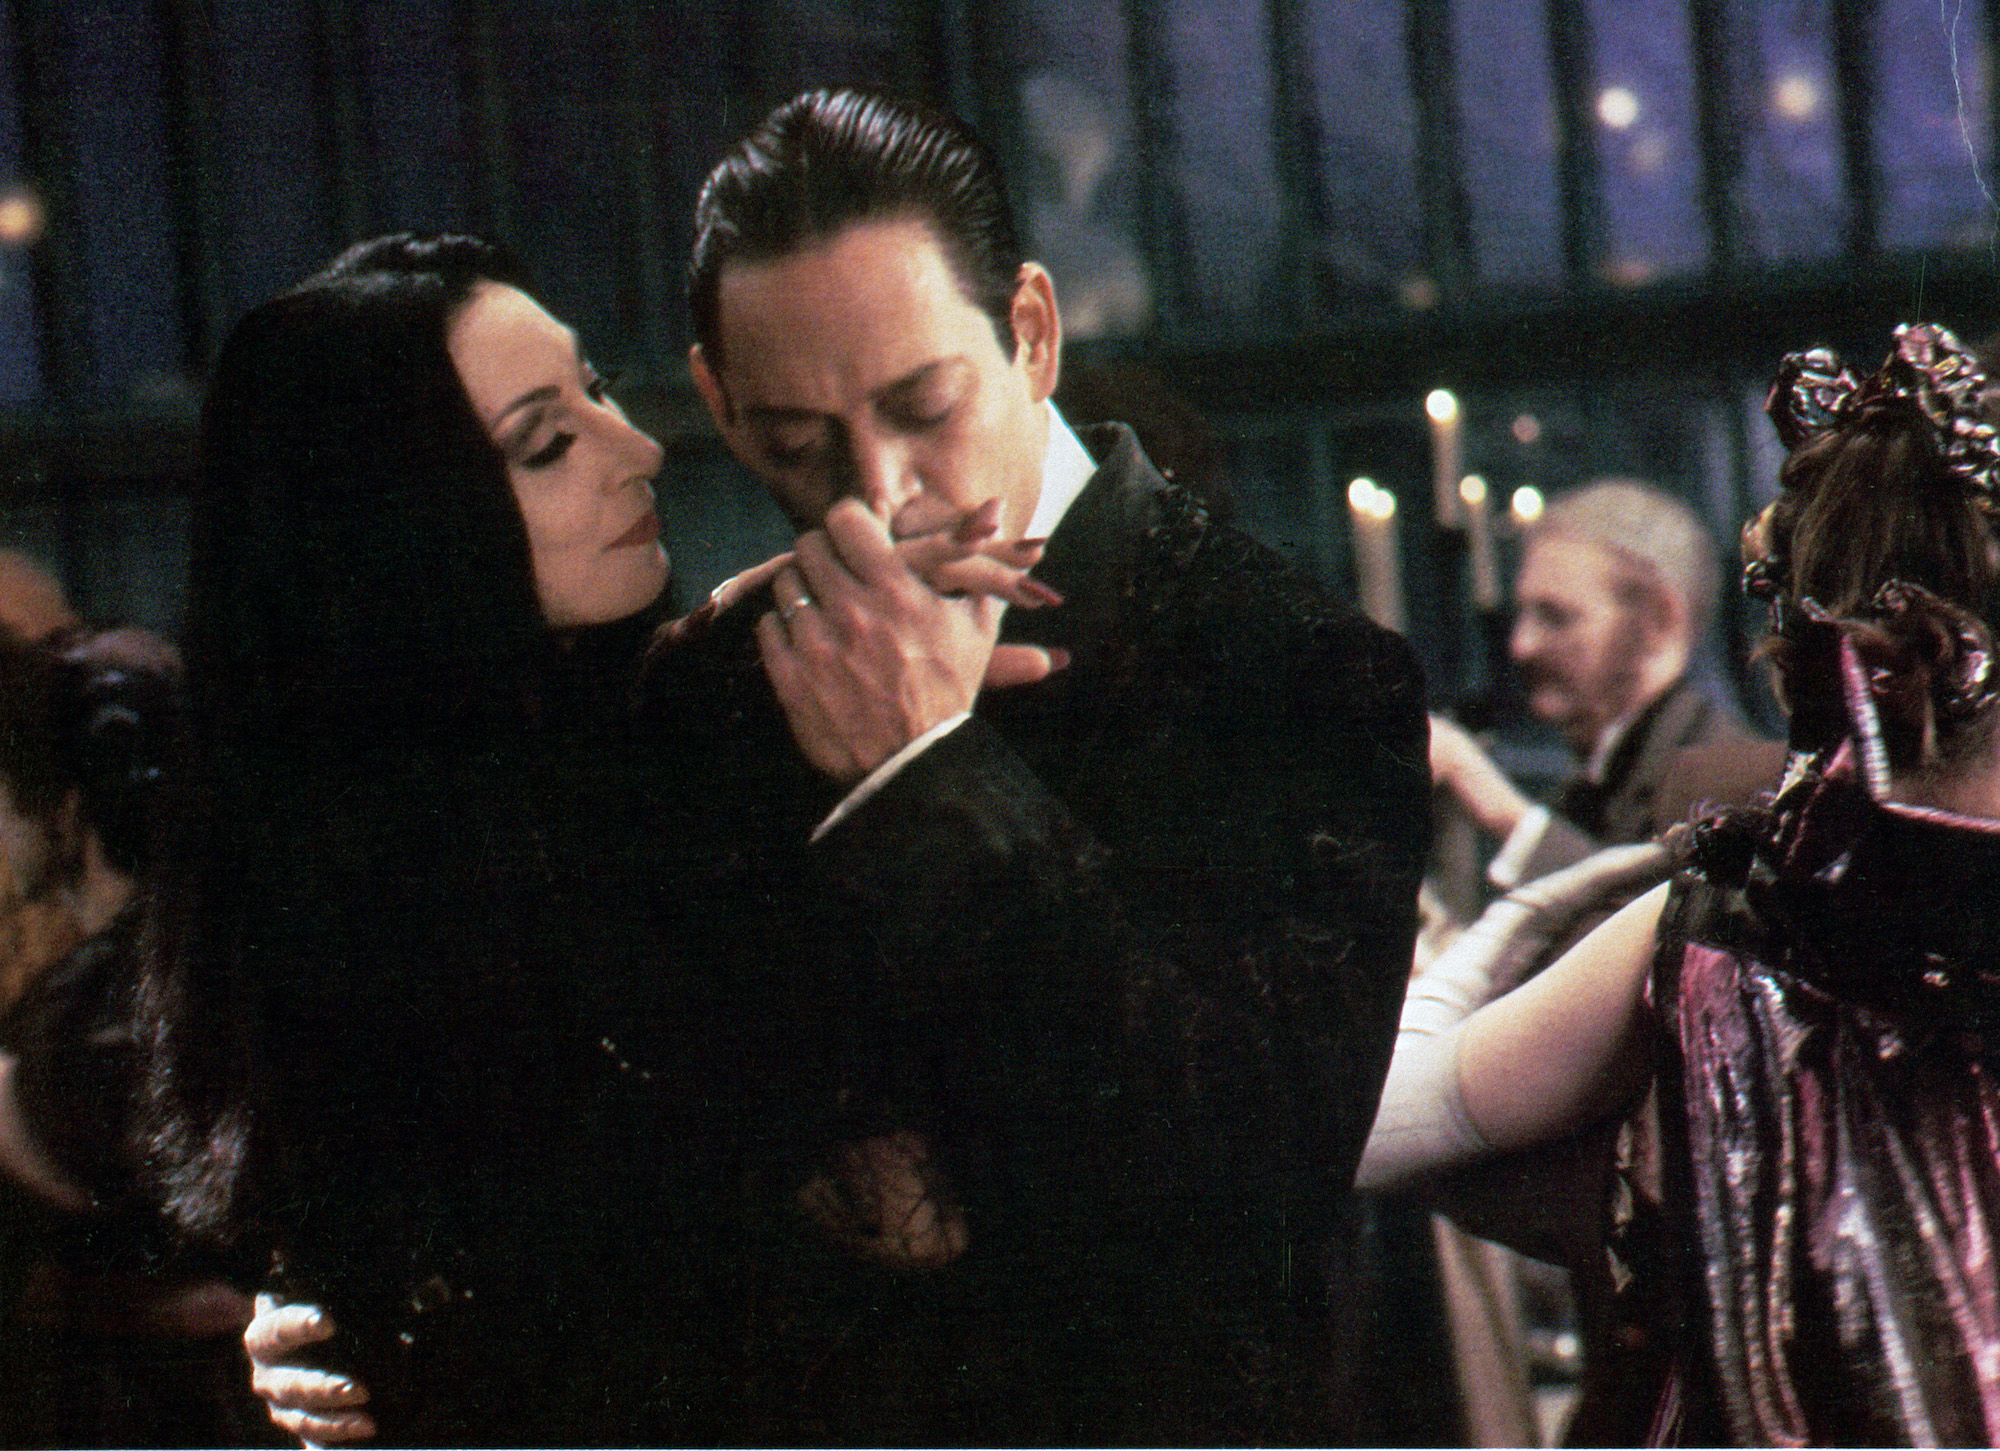 Addams family morticia cutting roses